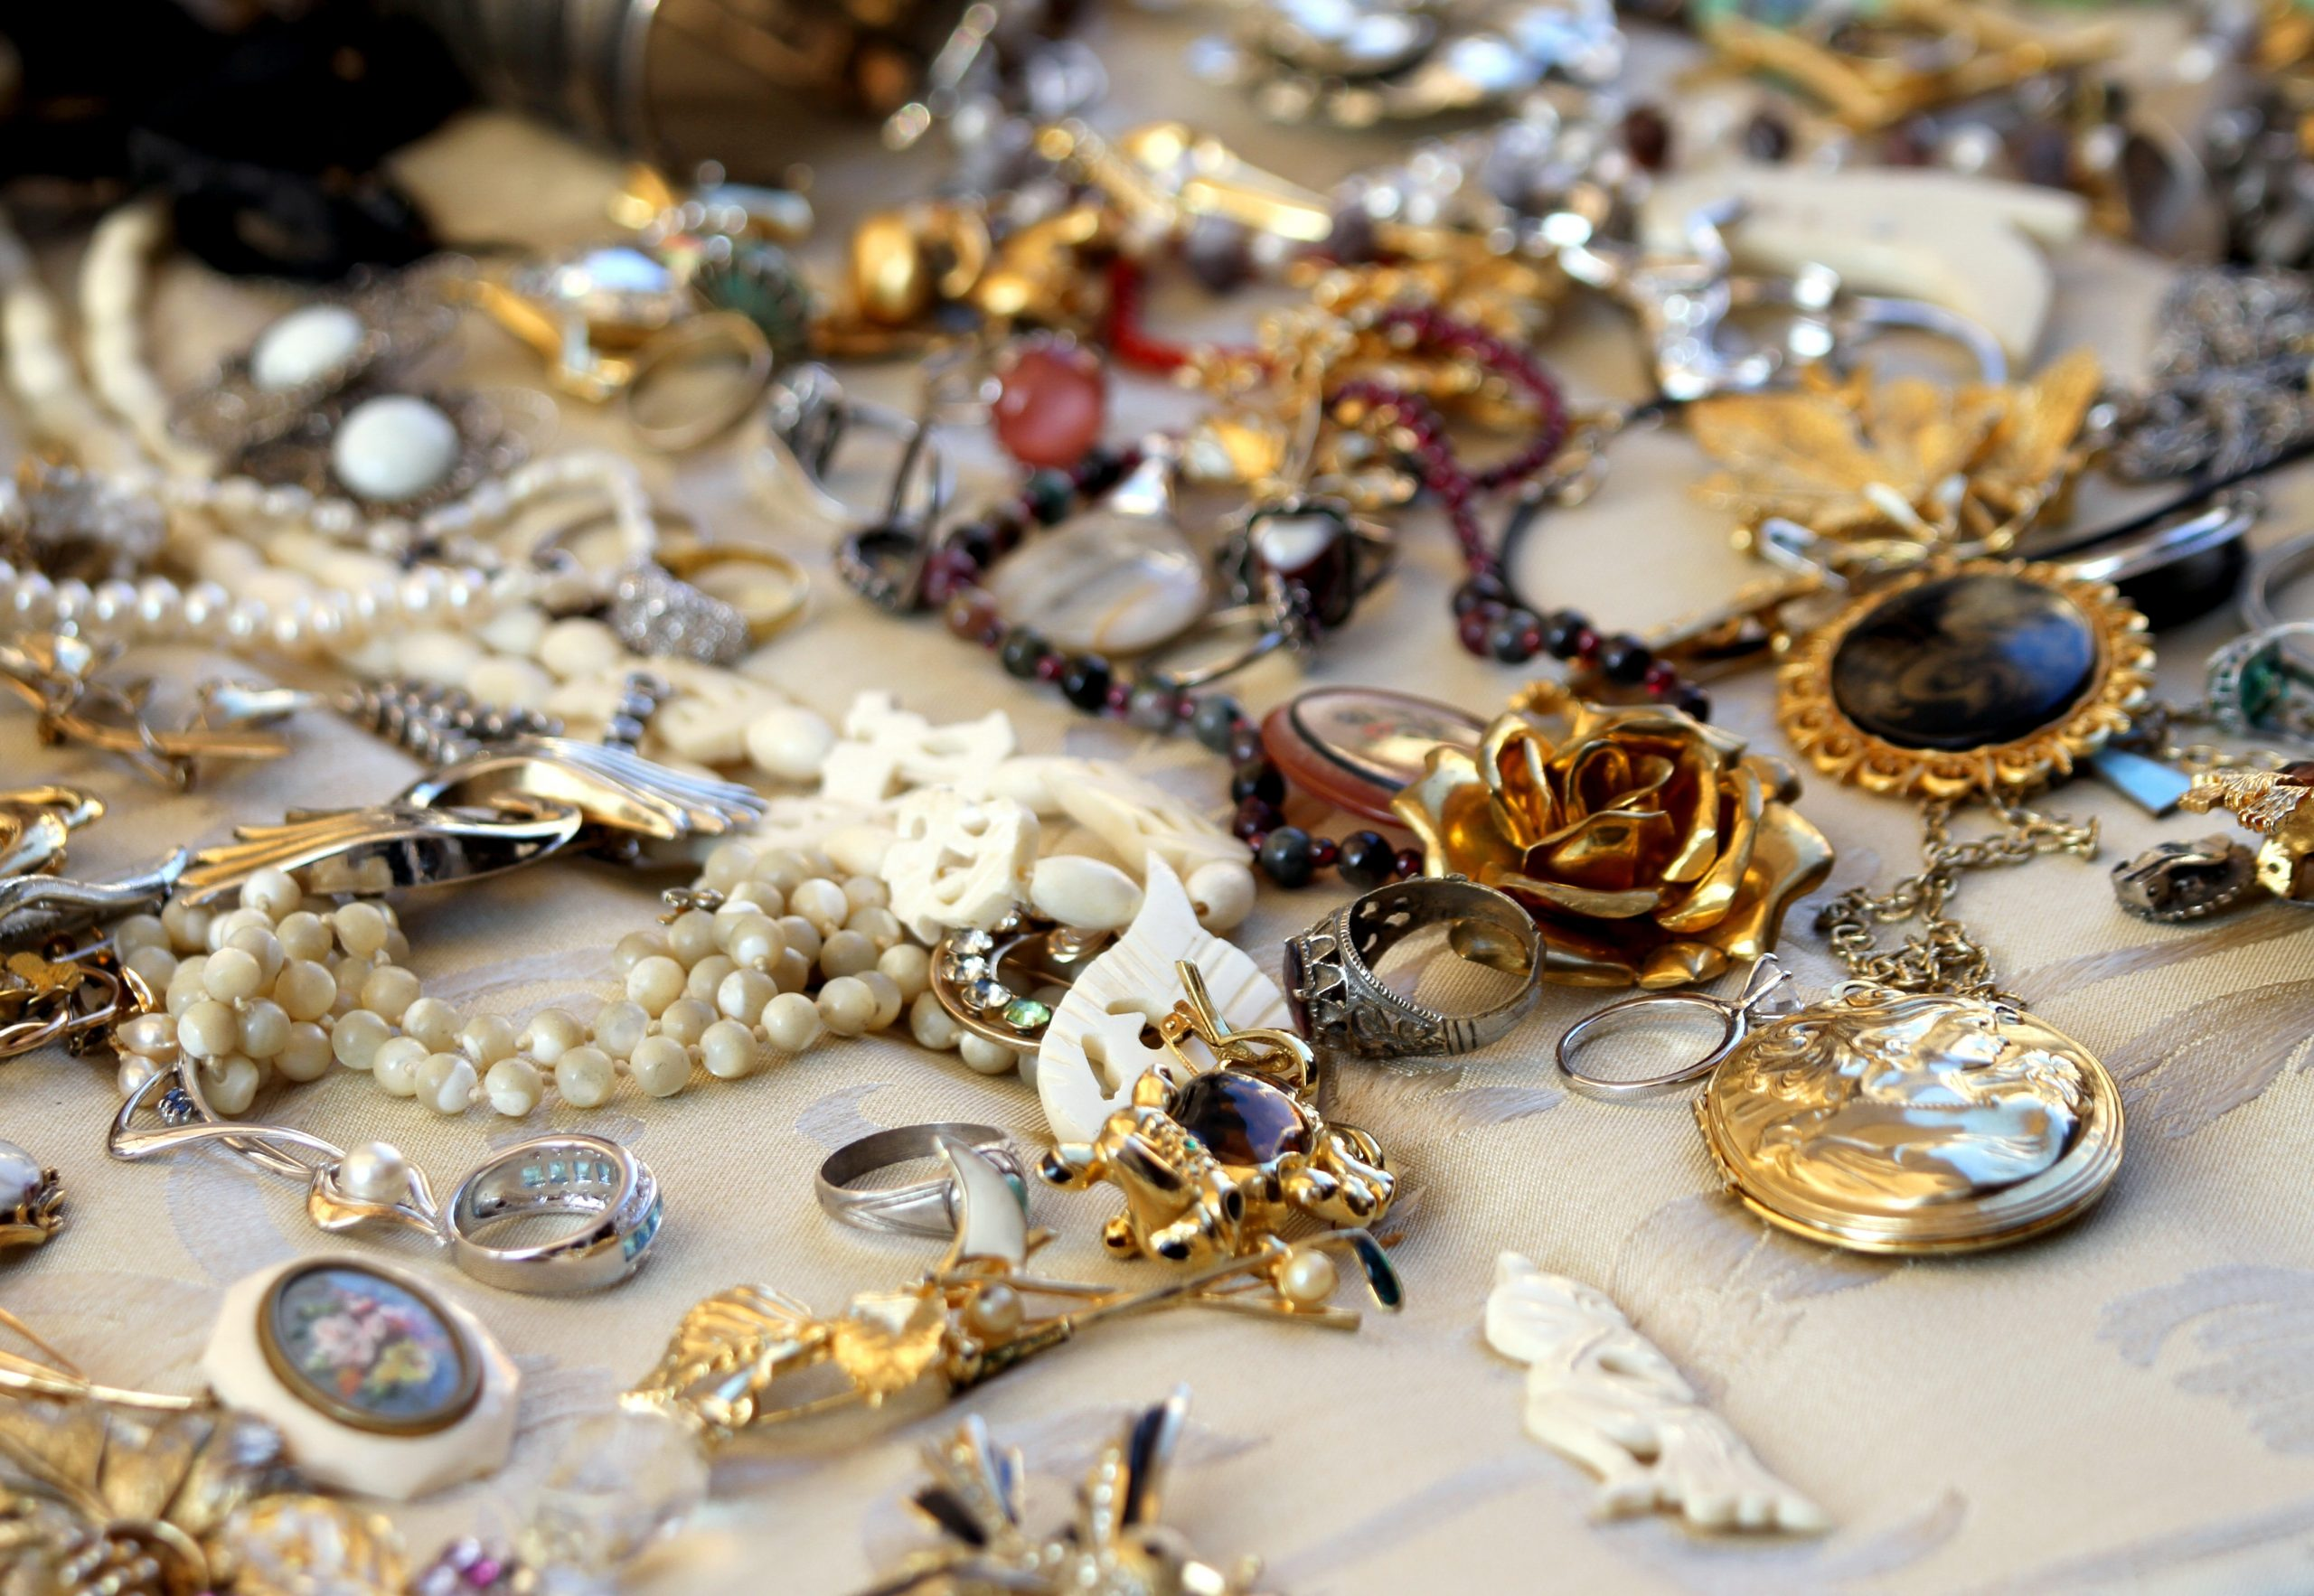 Jewelry Hacks: How to Safely Store Your Jewelry? - Keep them Organized!